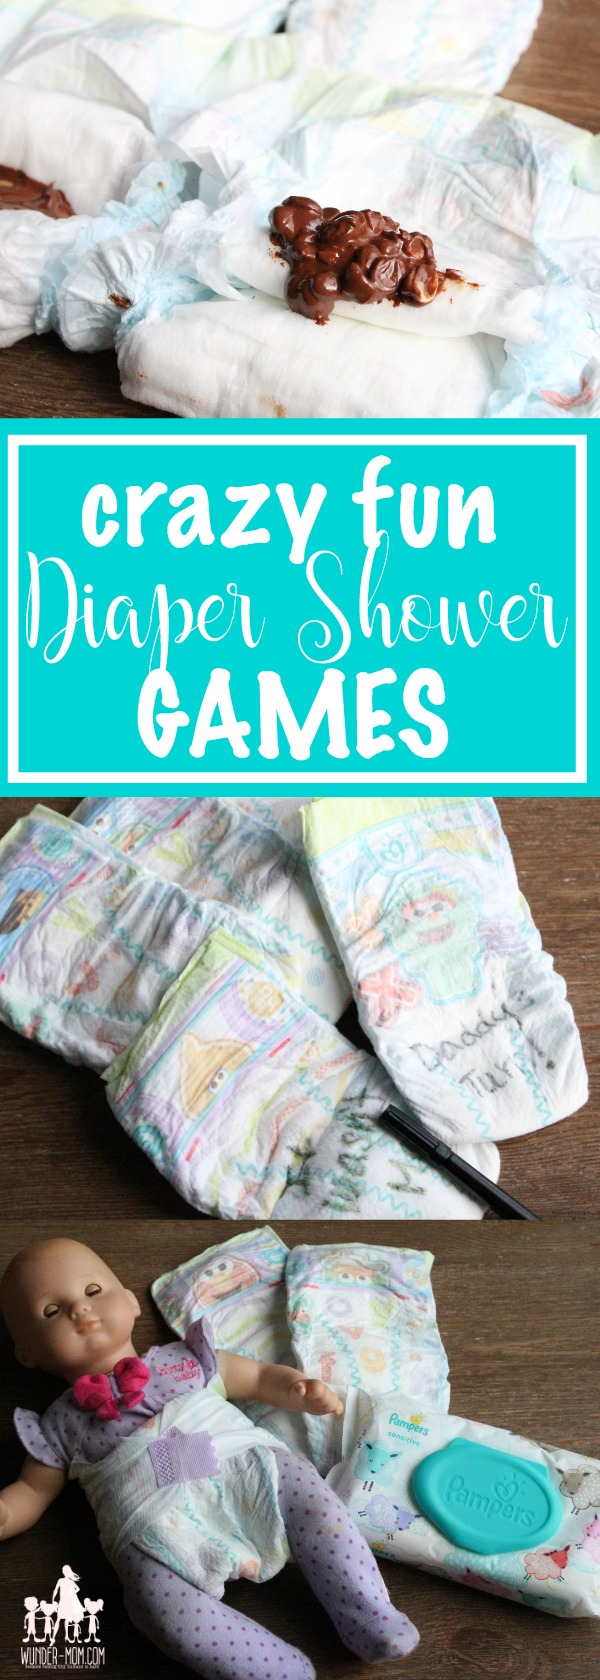 diaper shower